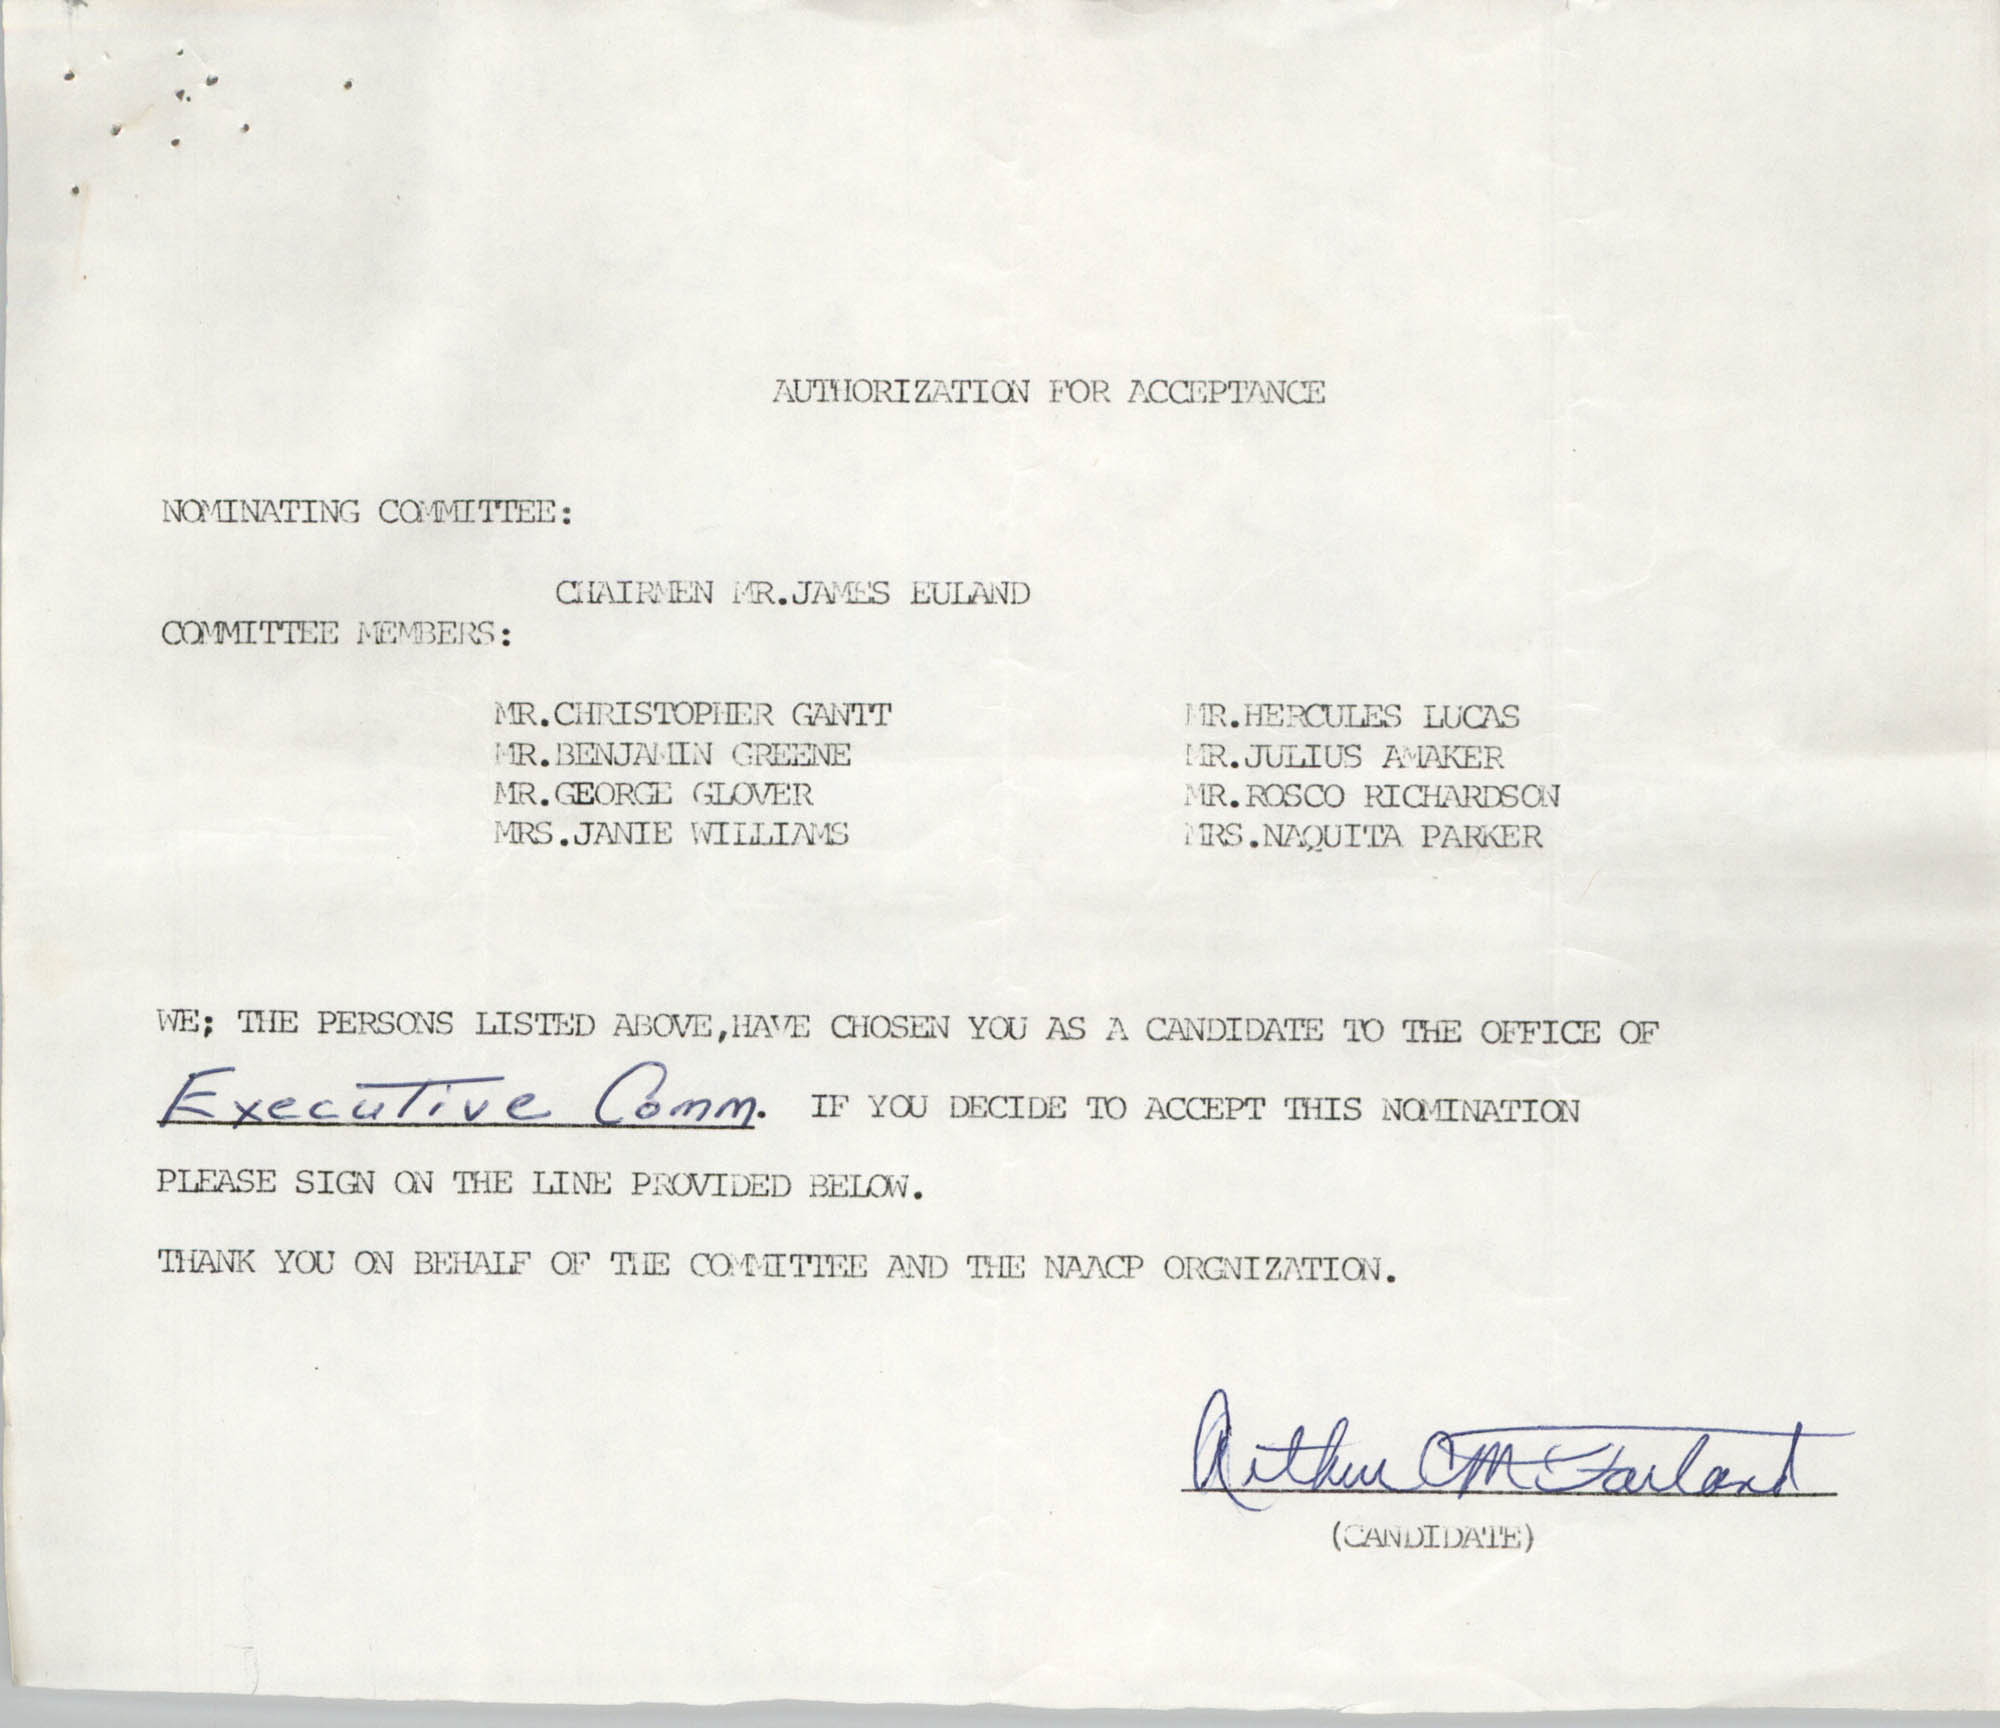 Charleston Branch of the NAACP Election Materials, Authorization for Acceptance for Arthur McFarland